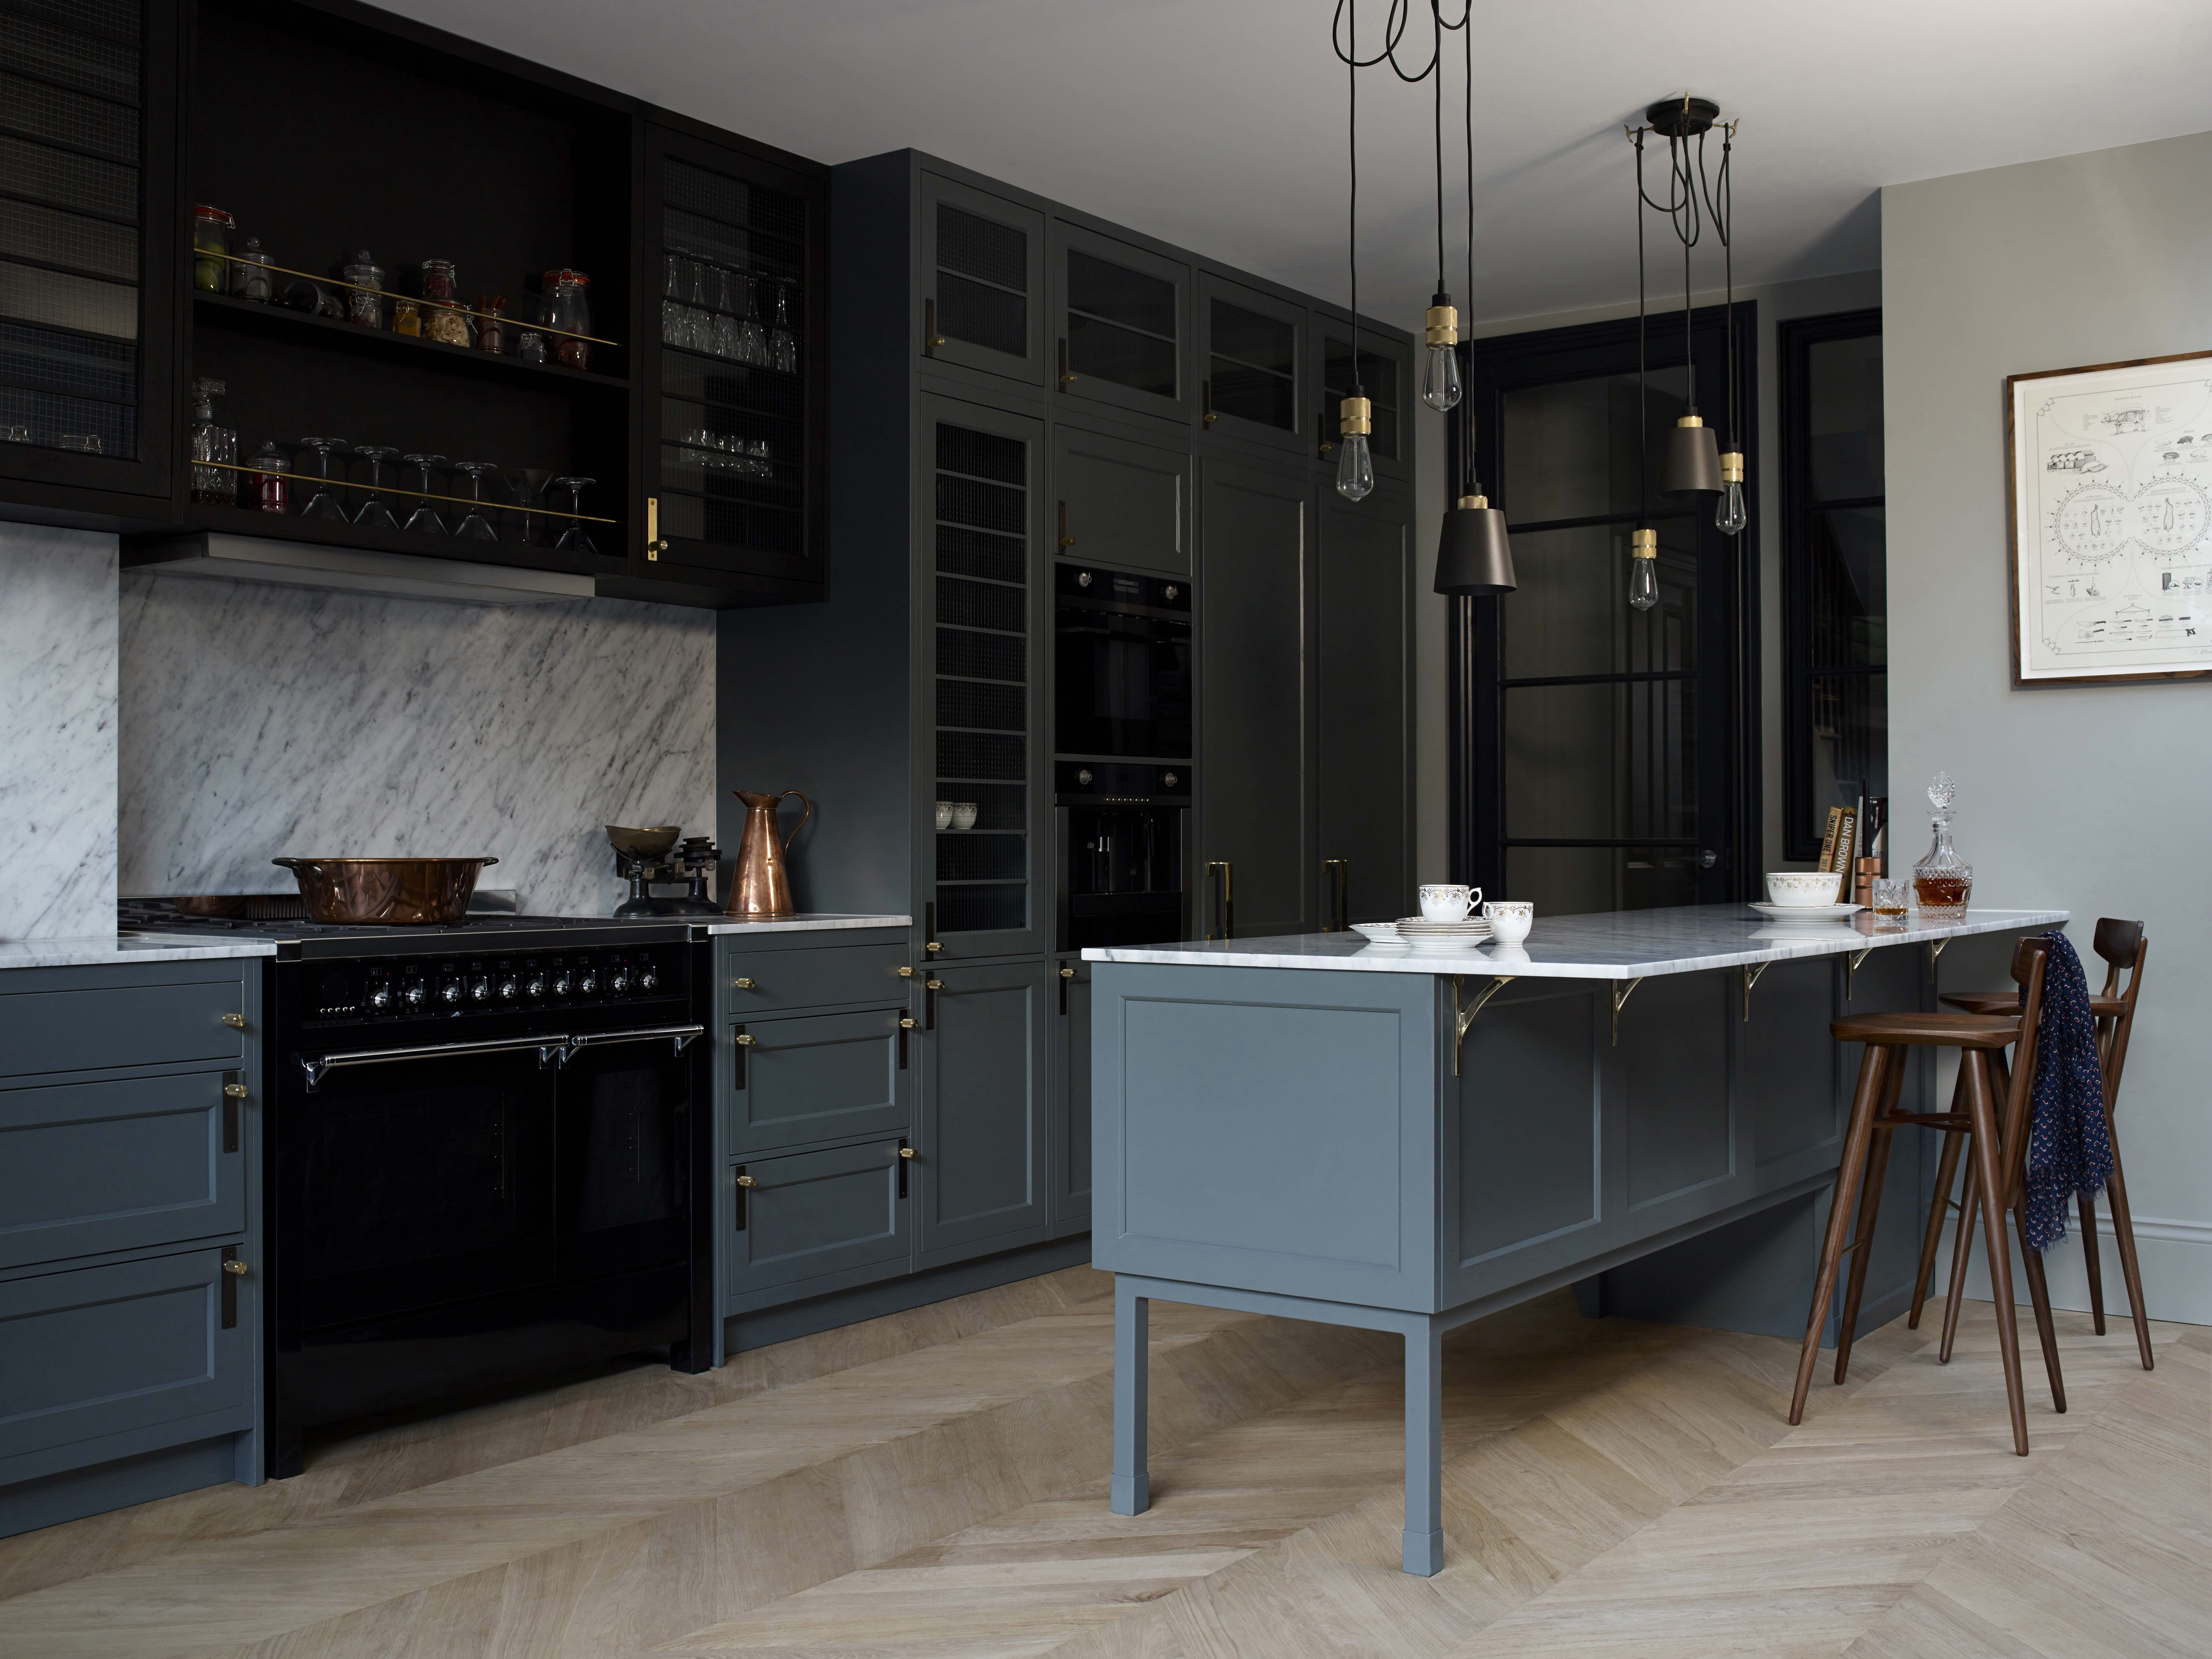 Modern, Contemporary Lifestyle Inspiration - Buster + Punch - The Butcher?s Kitchen